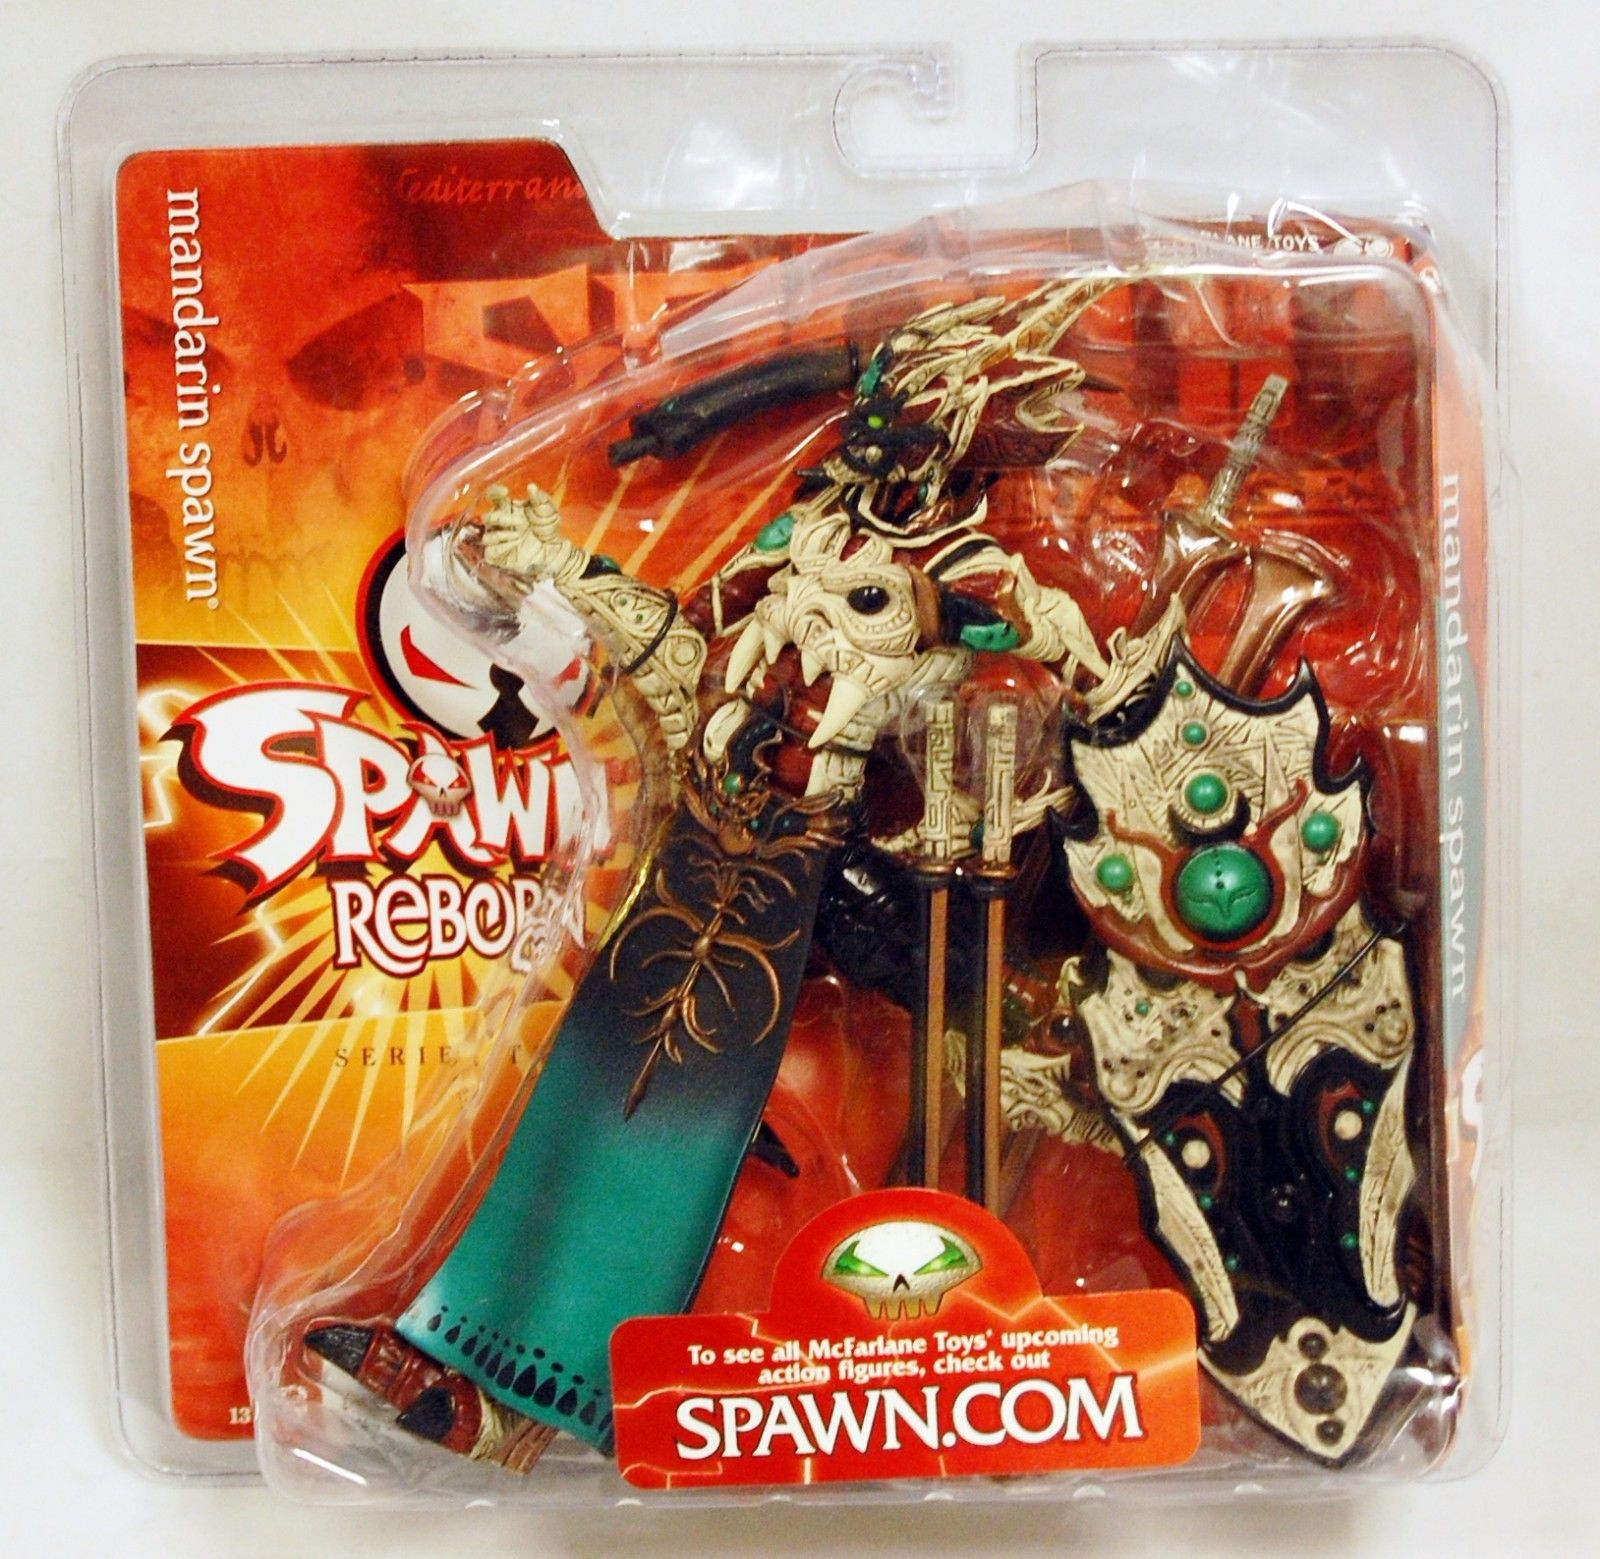 Mandarin Spawn Spawn Reborn Series 2 Action Figure